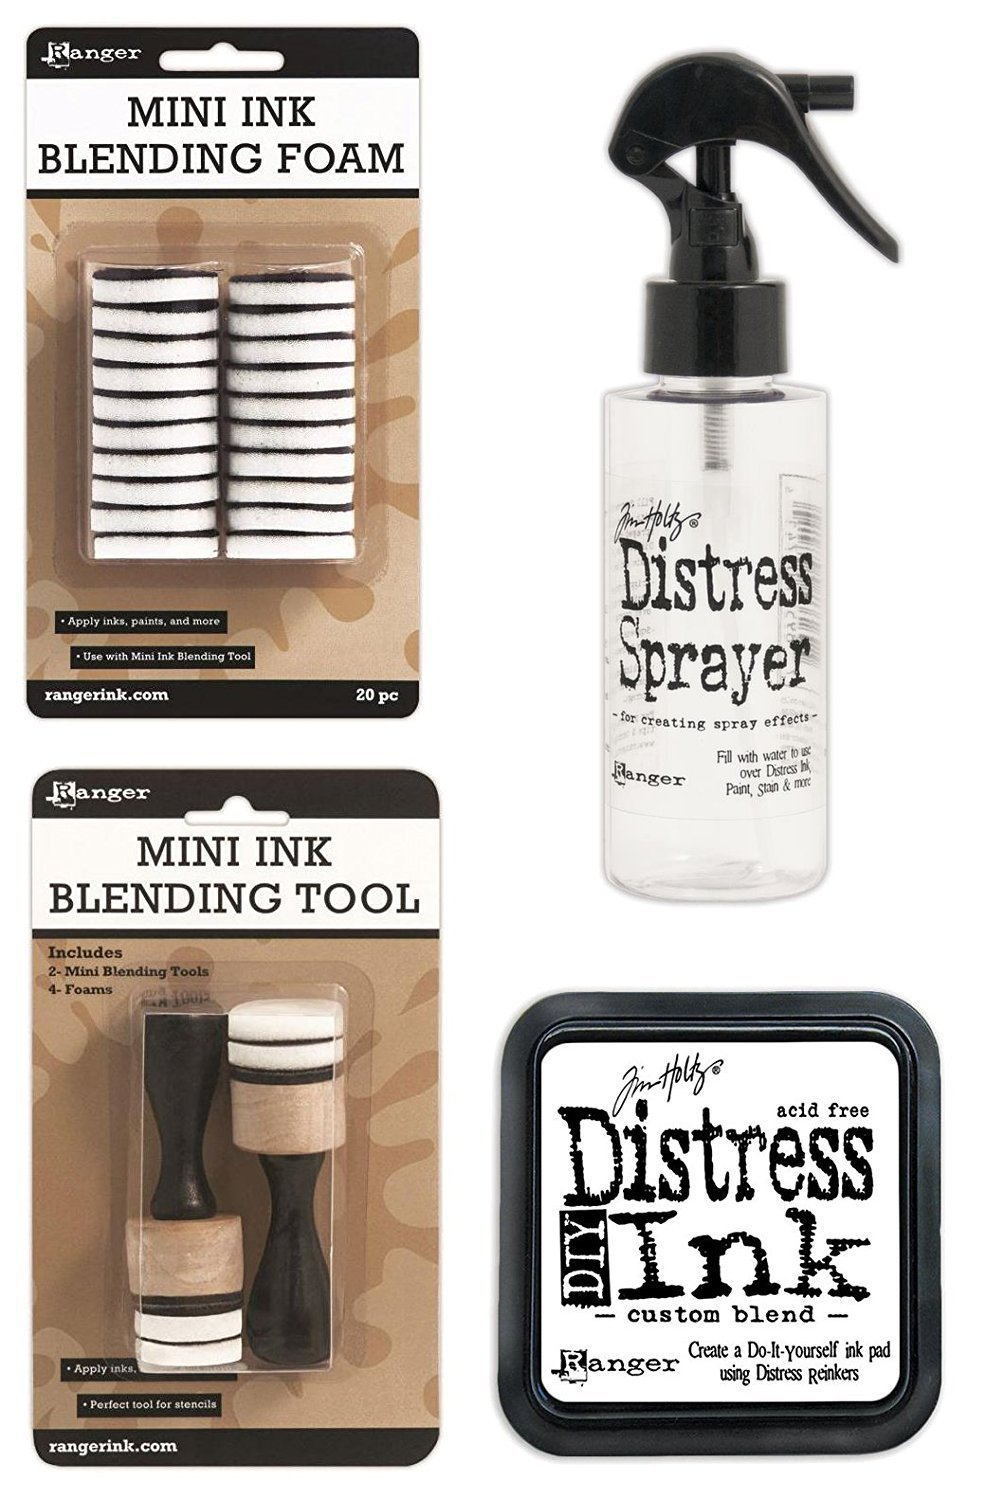 Tim Holtz Distress Bundle of 4 Items - Sprayer, DIY Ink Pad, Blending Tools, and Blending Foams Ranger Tim Holtz 4336989839